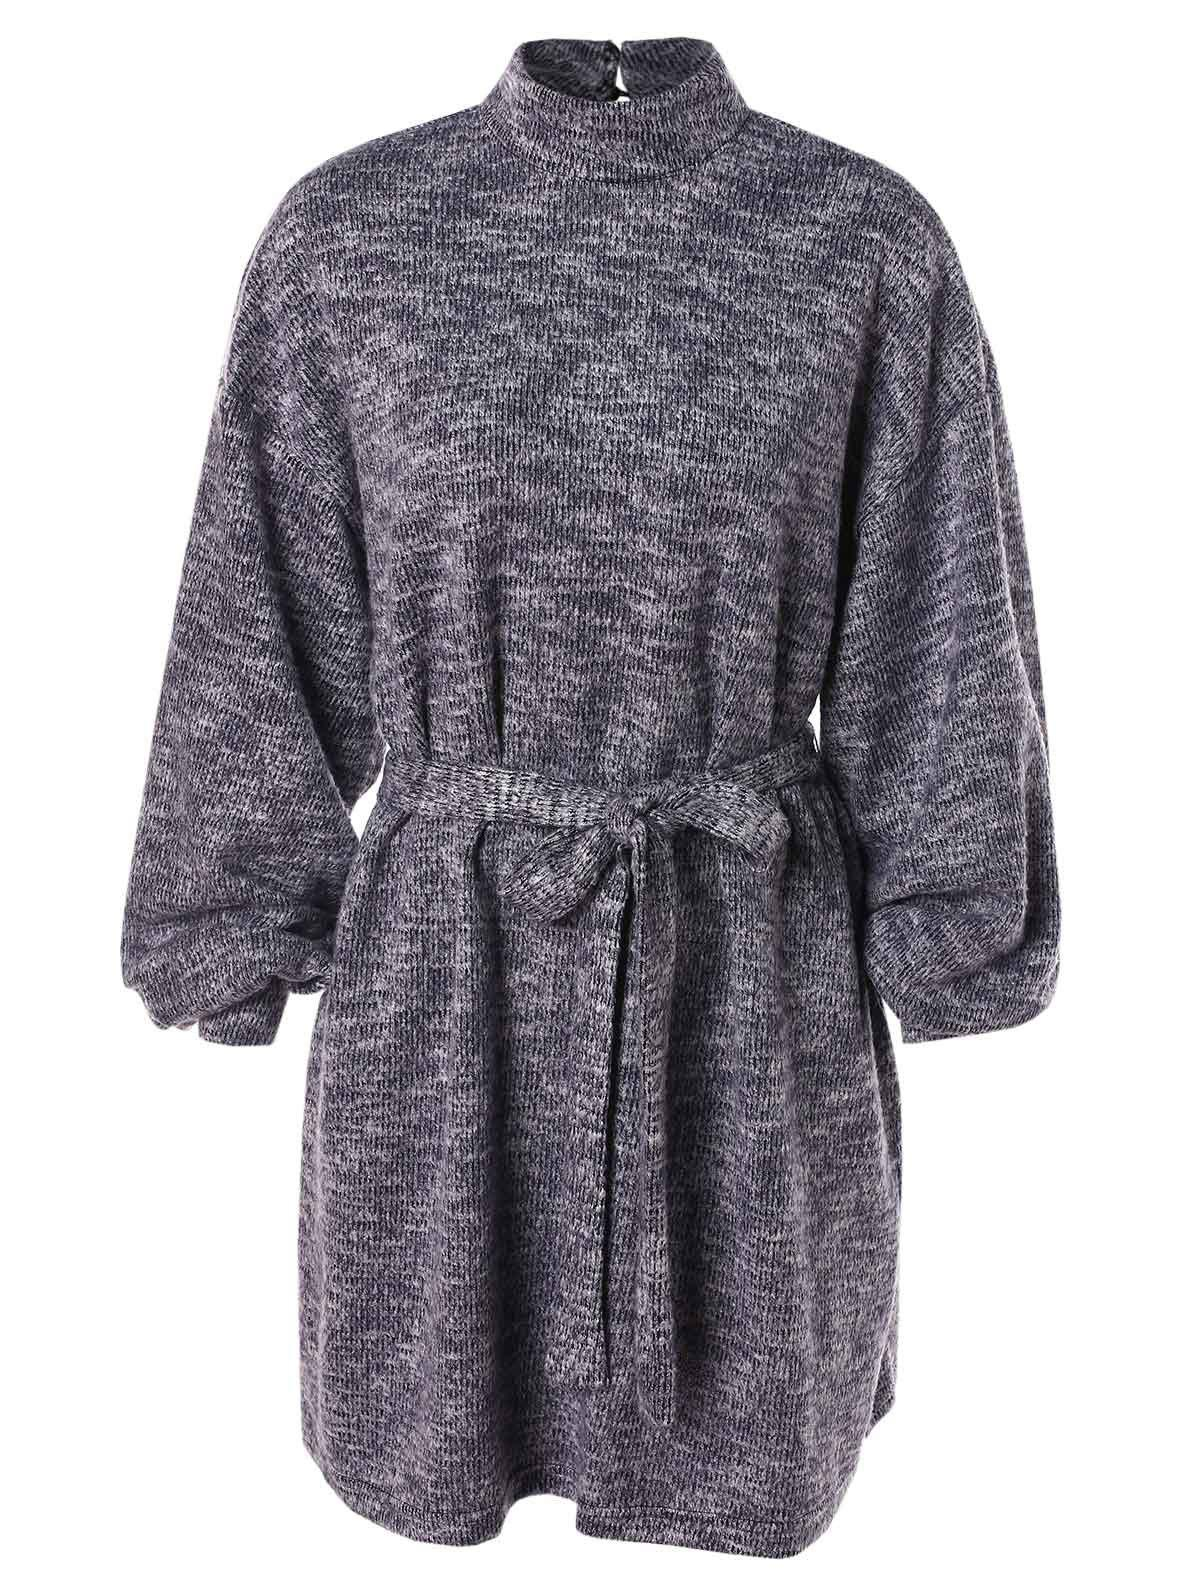 Latest Keyhole Back Belted Sweater Dress